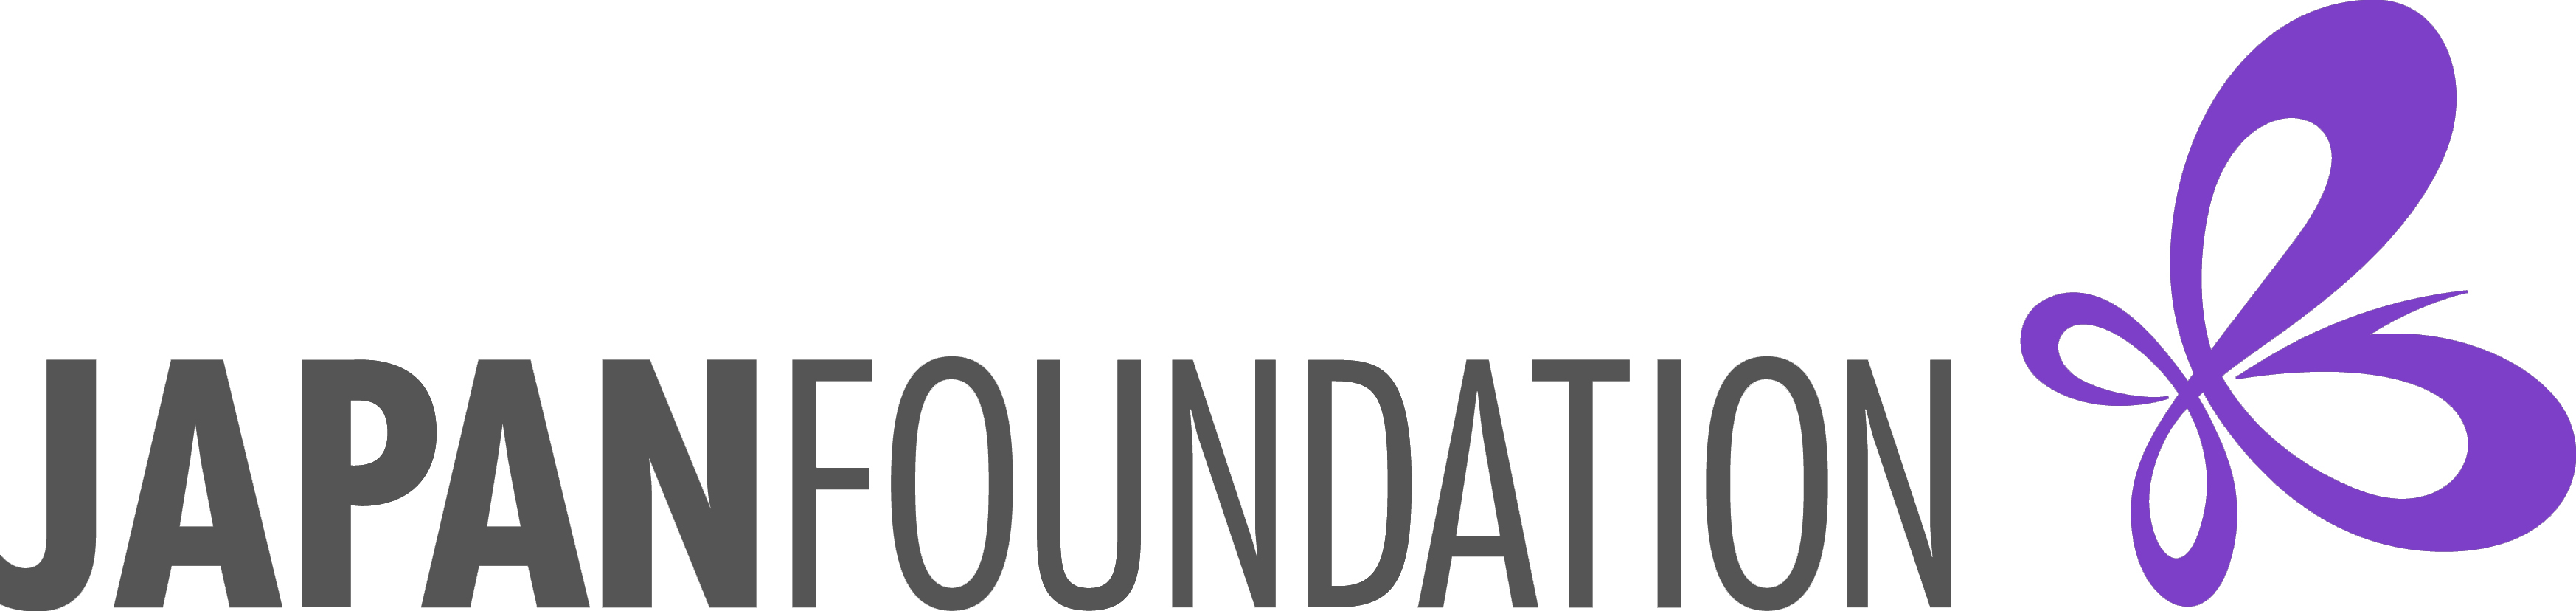 japan_foundation_logo_B